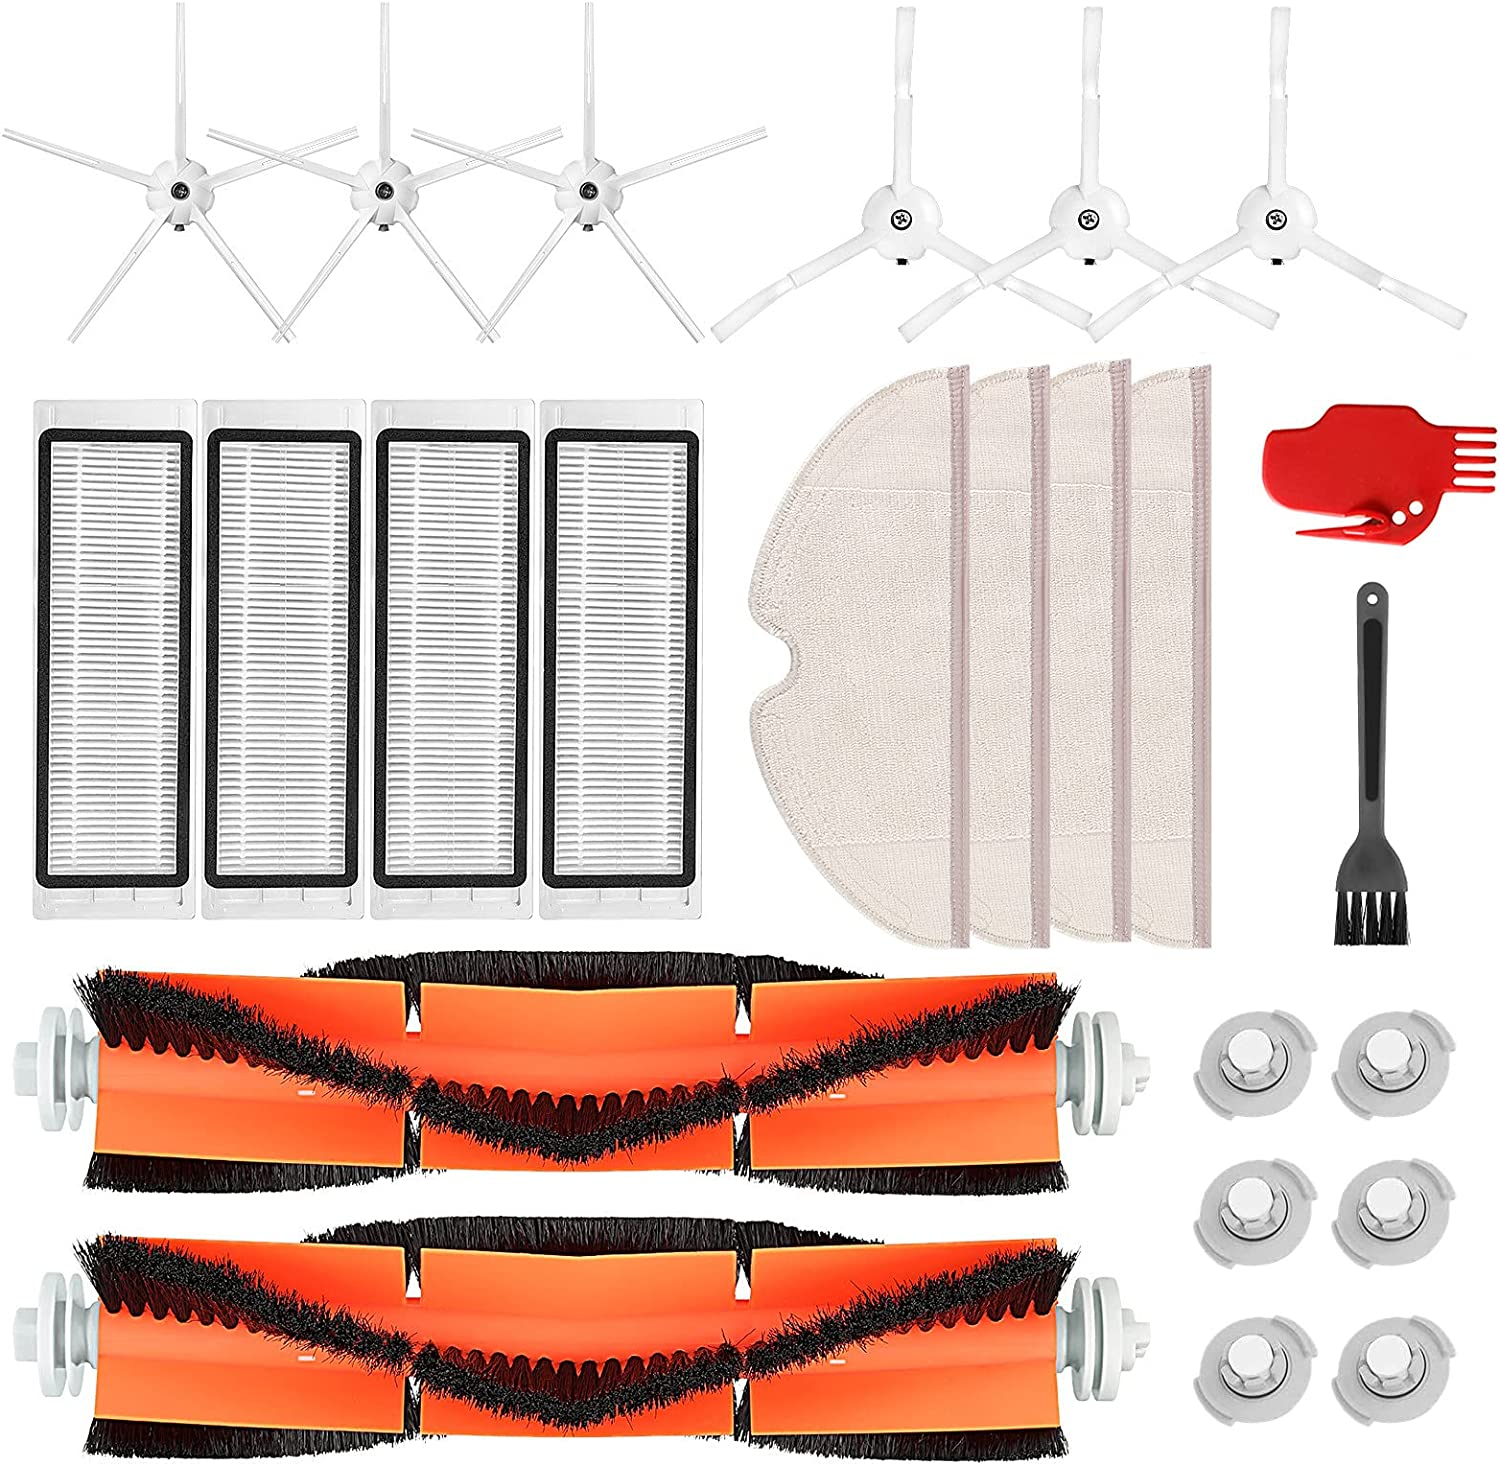 Discount is also underway Sale iSingo 24 Pack Accessories Kit for M Max Roborock S4 S5 S6